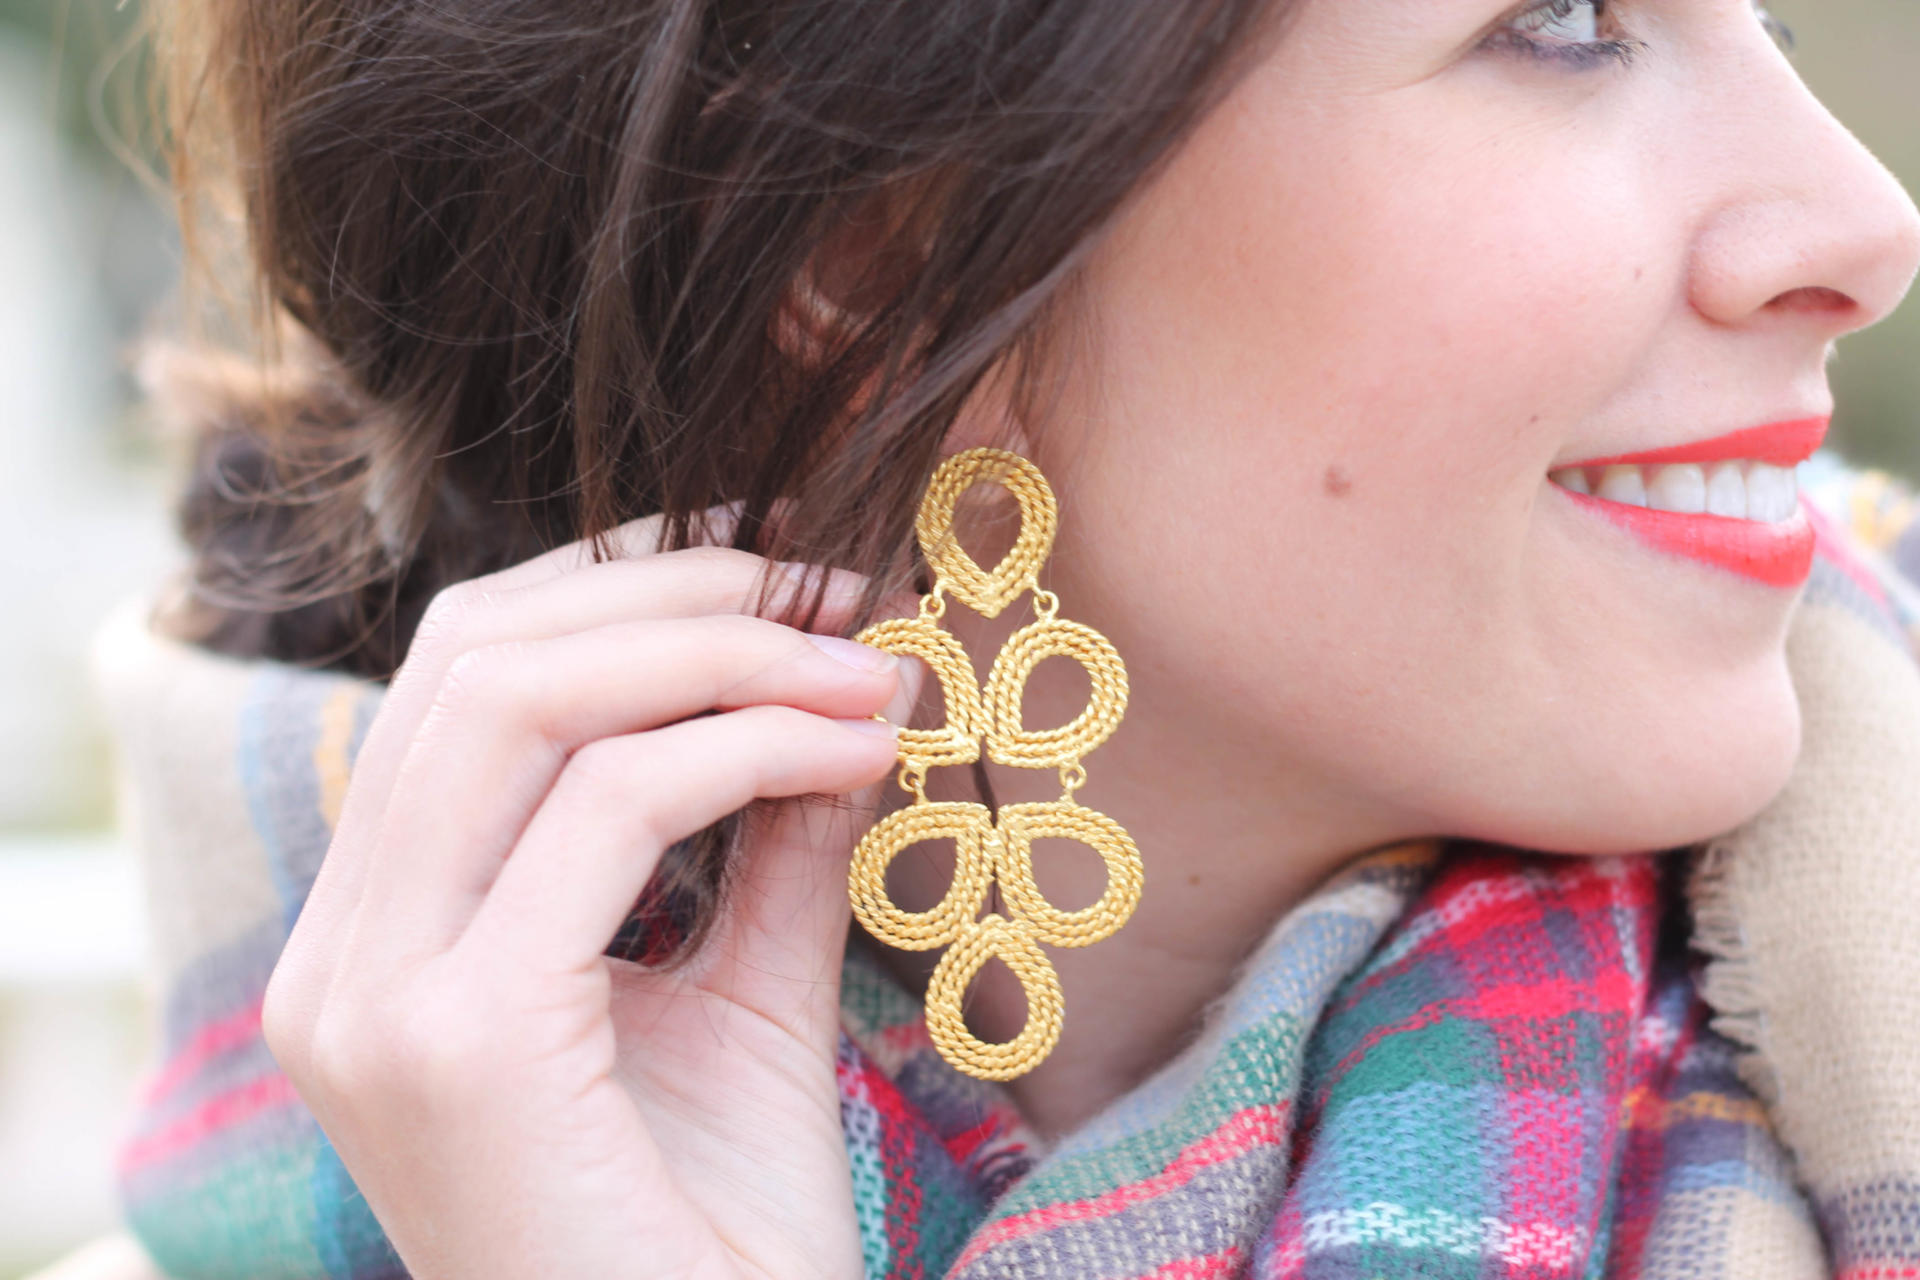 Statement Earring Lisa Lerch - Statement Earrings For Christmas by New York fashion blogger Style Waltz